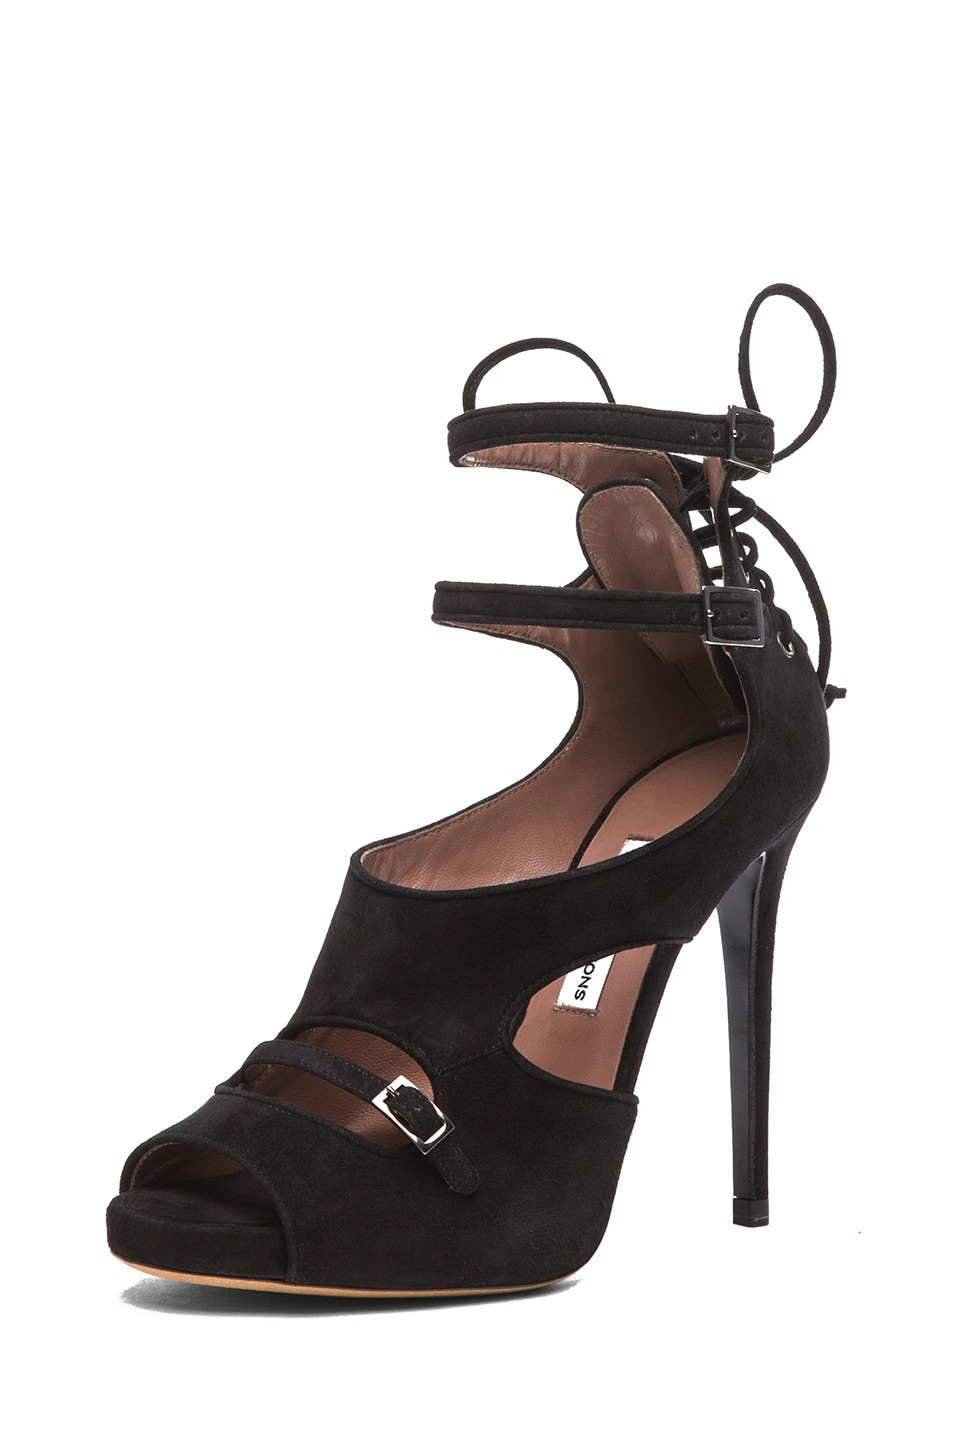 Image 2 of Tabitha Simmons Bailey Suede Heels in Black